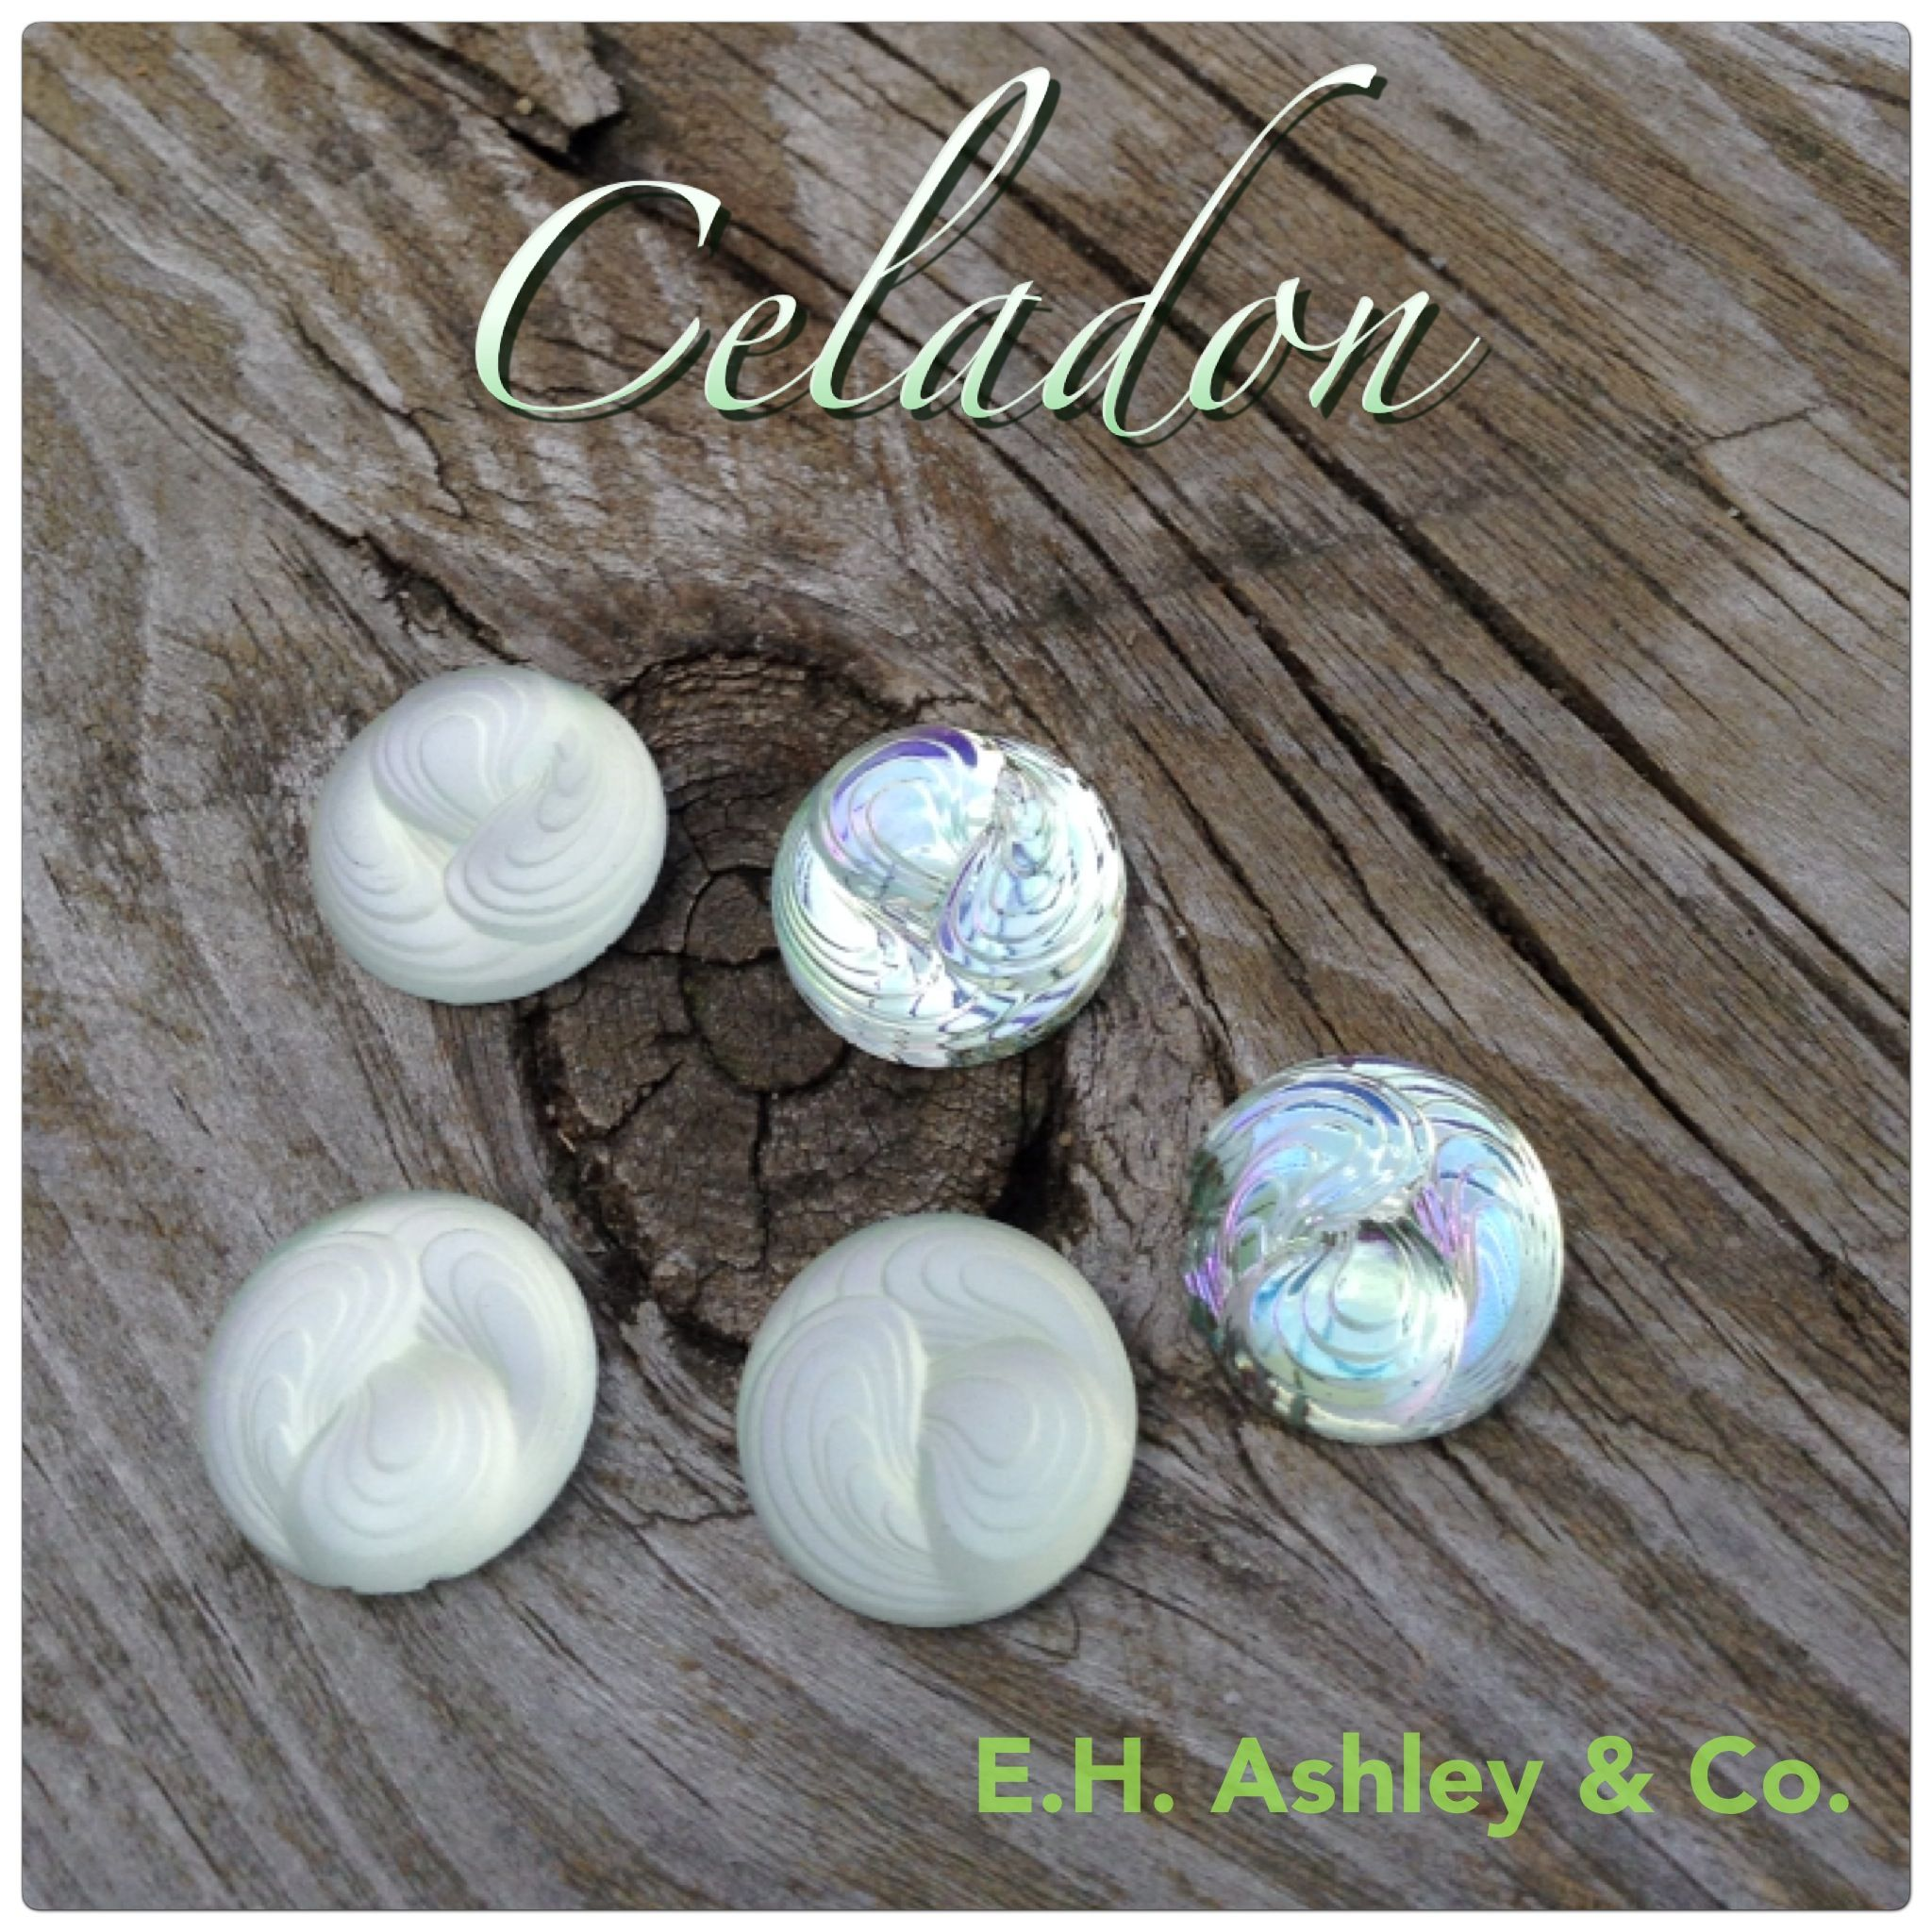 E.H. Ashley's newest Cabochon! Article 13216 18mm BRIGHT & MATT shown in our Exclusive Custom Coating CRYSTAL CELADON www.ehashley.com #cabochon #customcoating #celadon